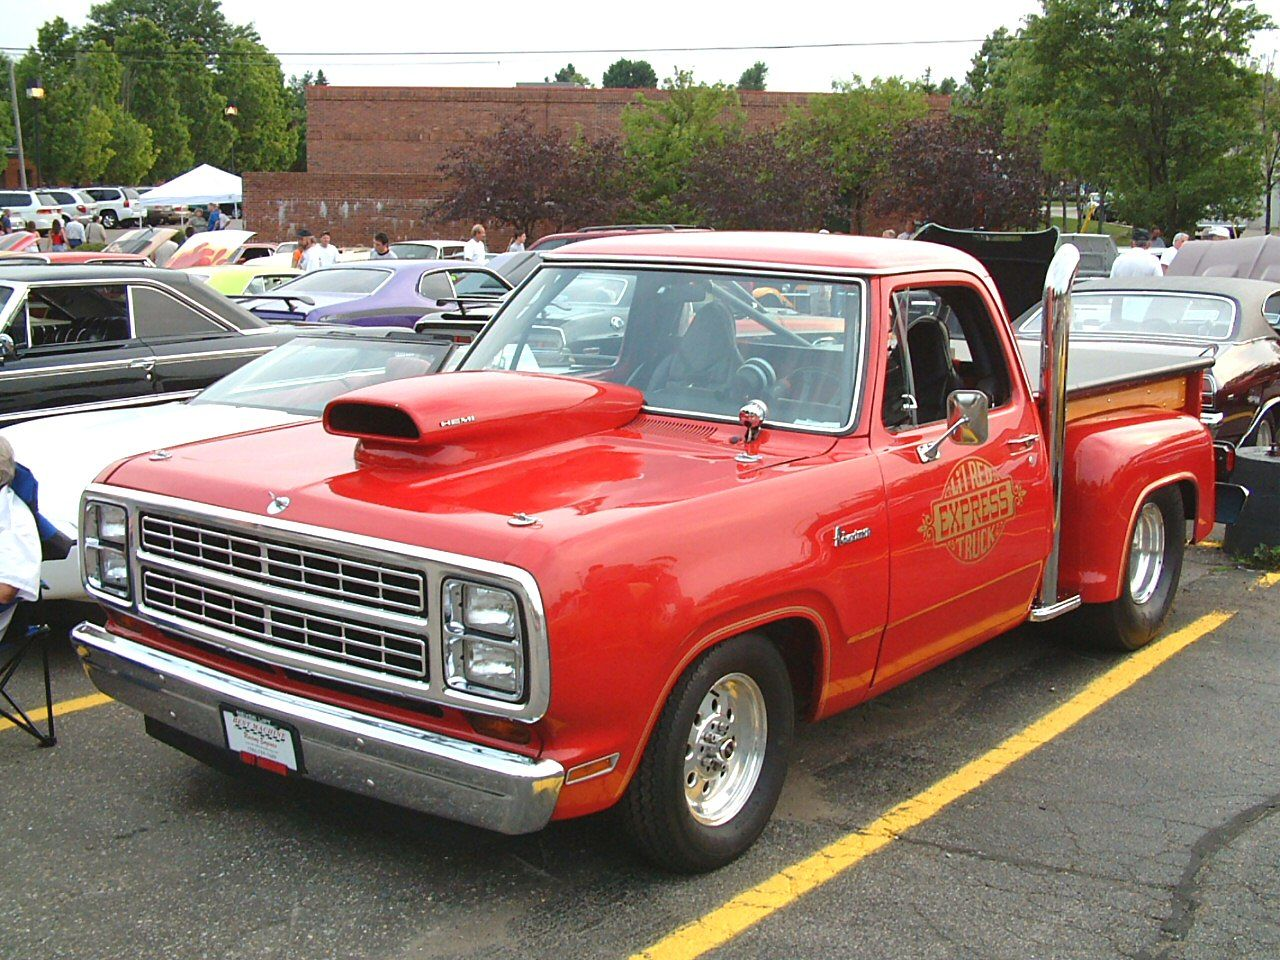 dodge lil red express 1978 dodge lil red express truck with 426 hemi frt qtr bennigan s car. Black Bedroom Furniture Sets. Home Design Ideas